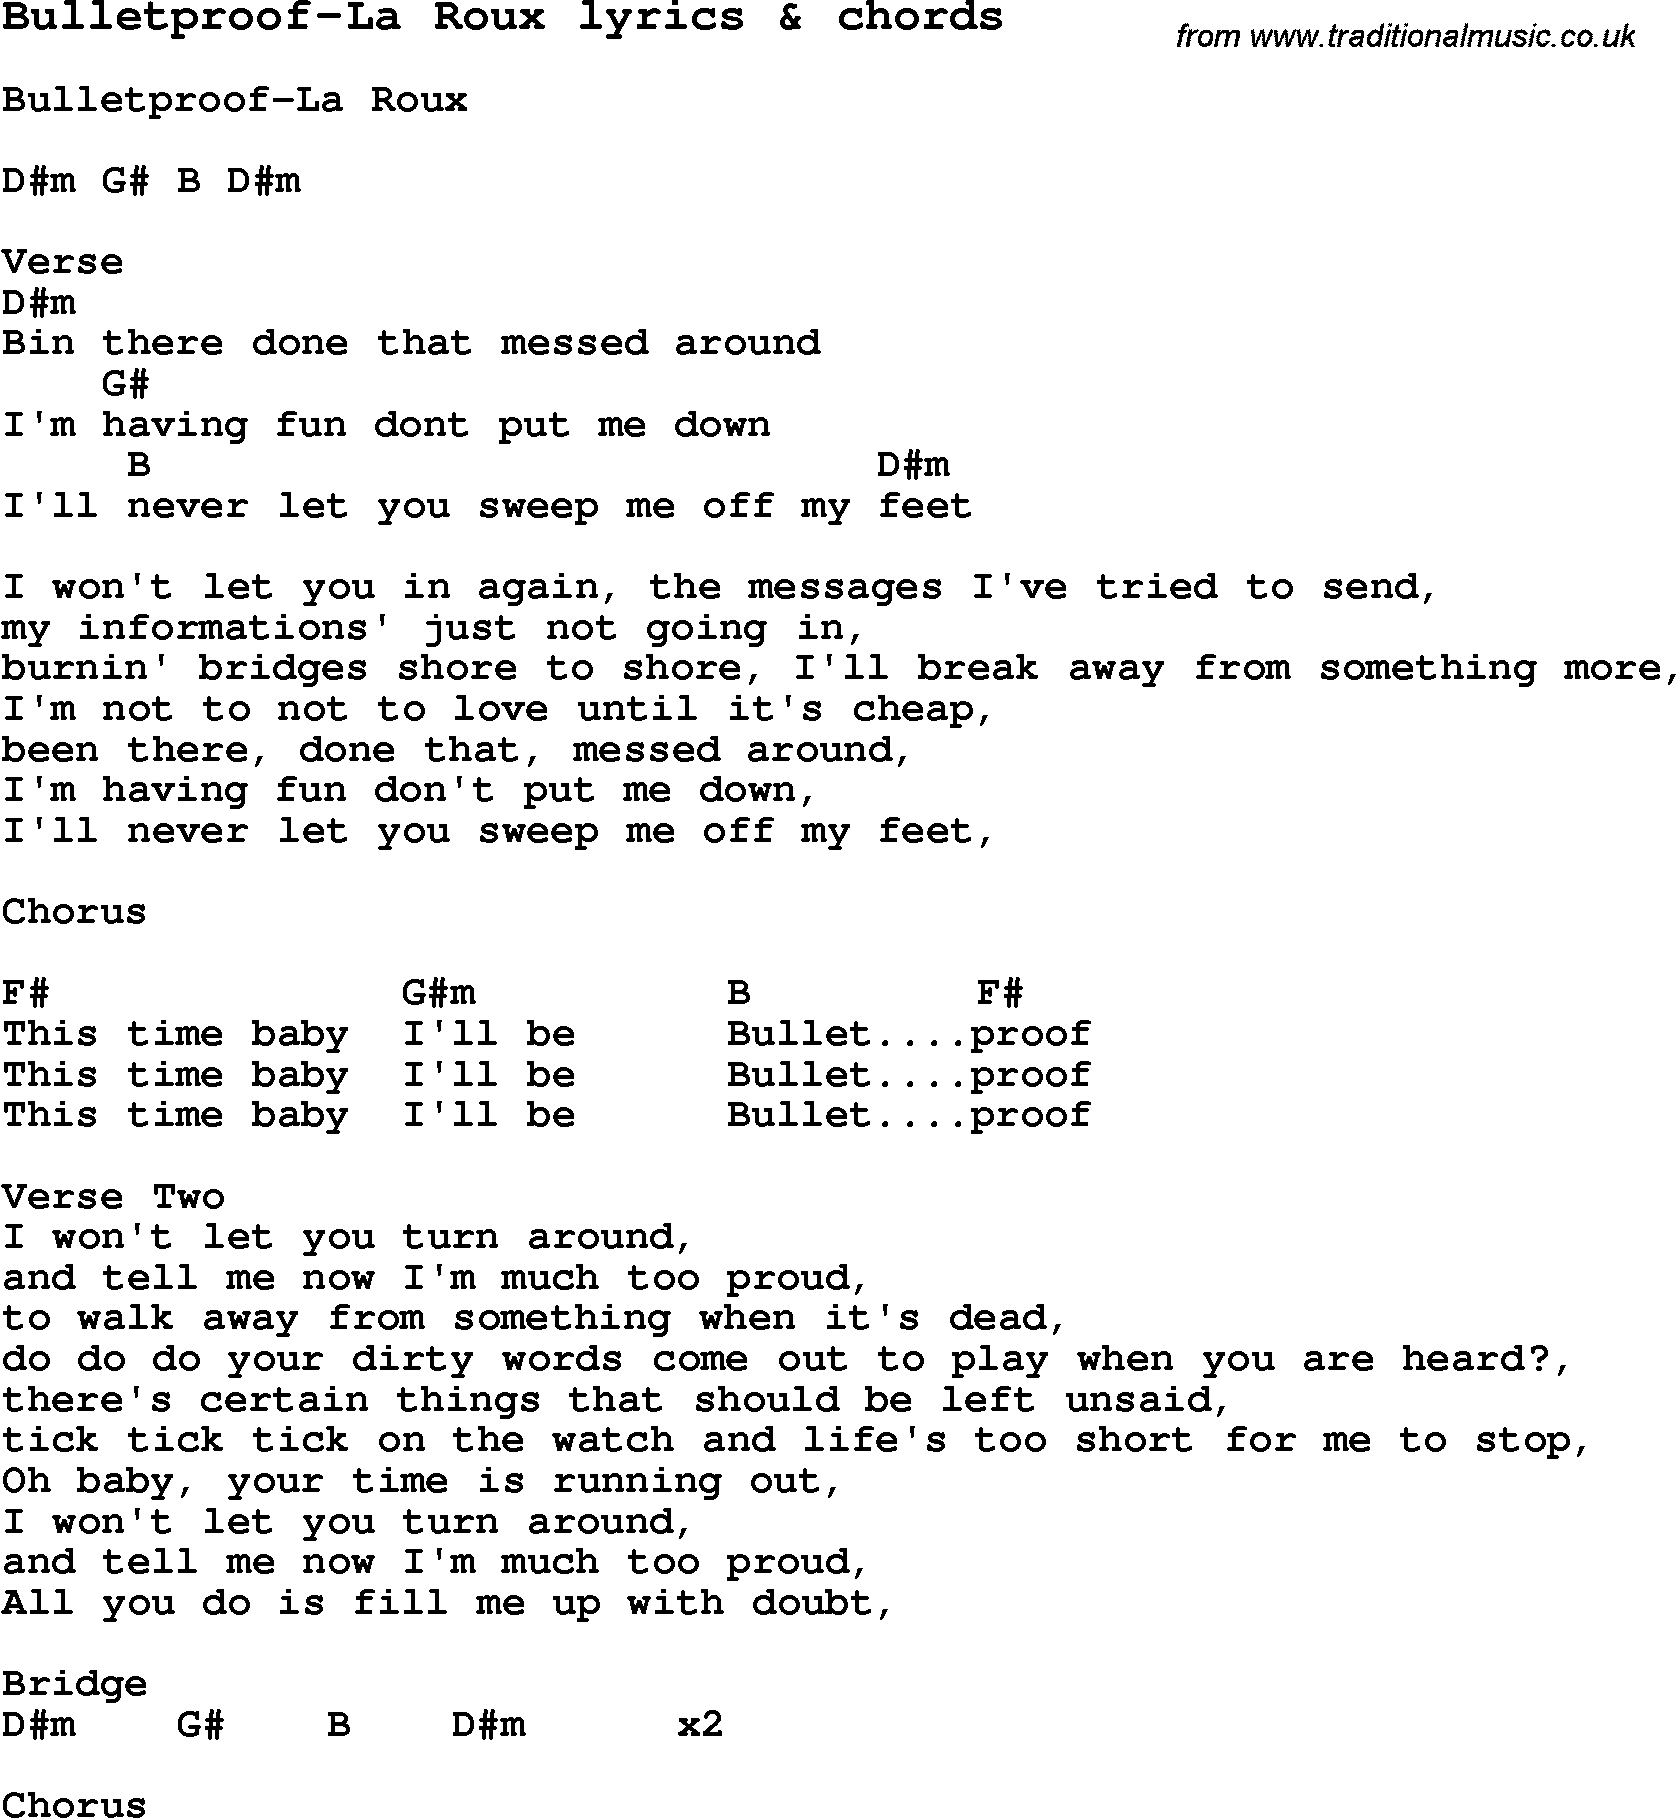 Skinny Love Ukulele Chords Love Song Lyrics Forbulletproof La Roux With Chords